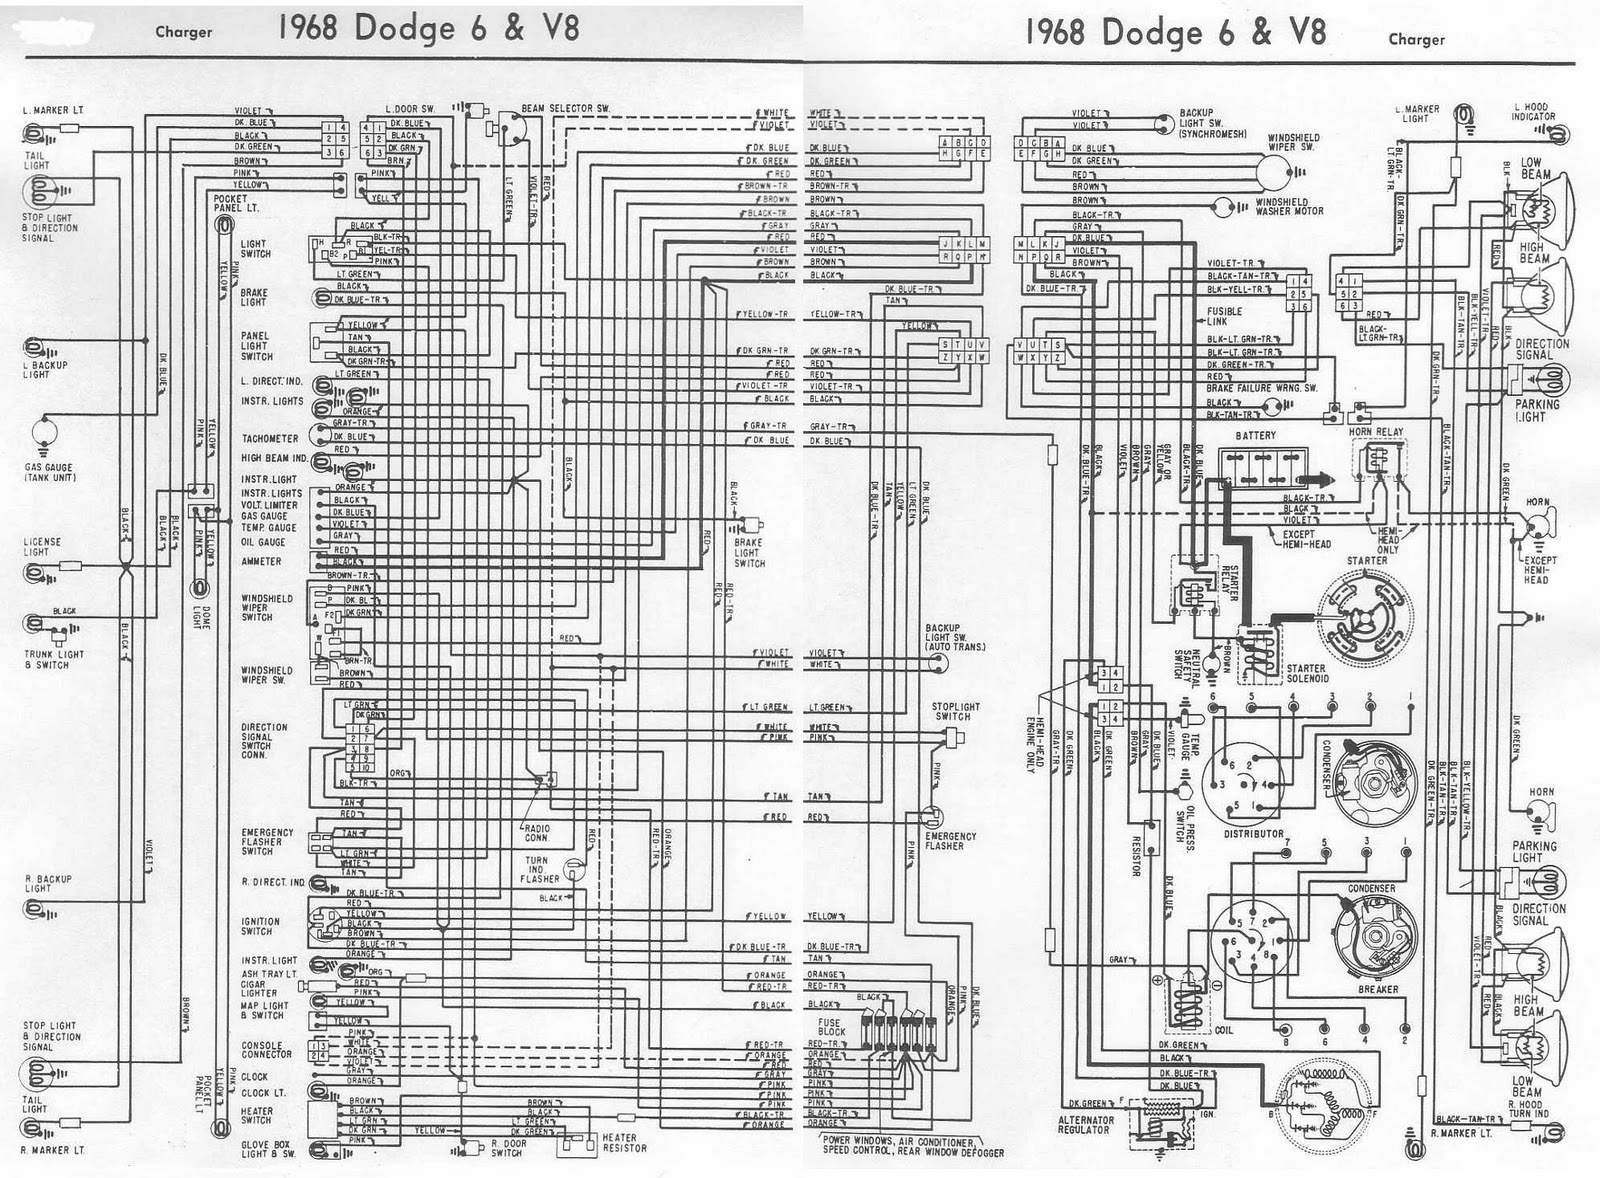 wiring diagram dodge charger 1968 wiring wiring diagrams online dodge charger 1968 6 and v8 complete electrical wiring diagram